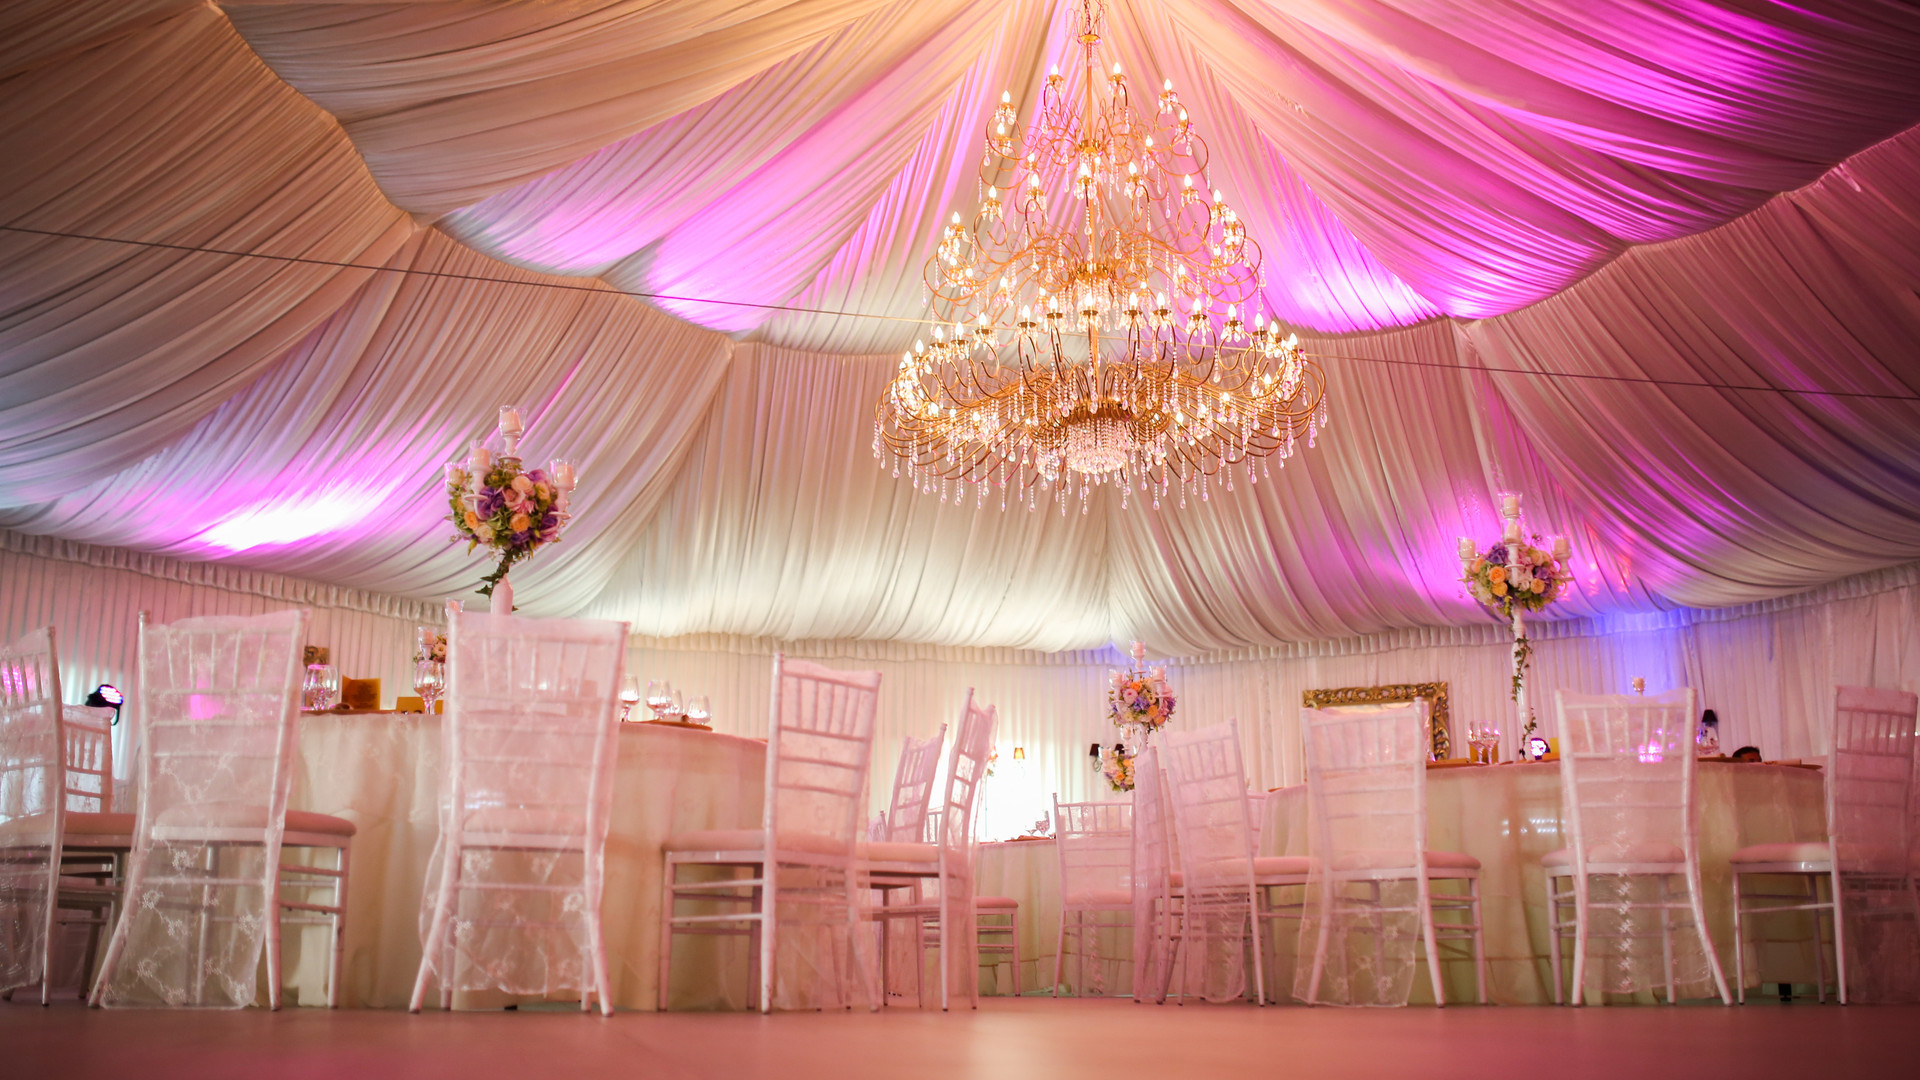 Interior of a wedding tent decoration re